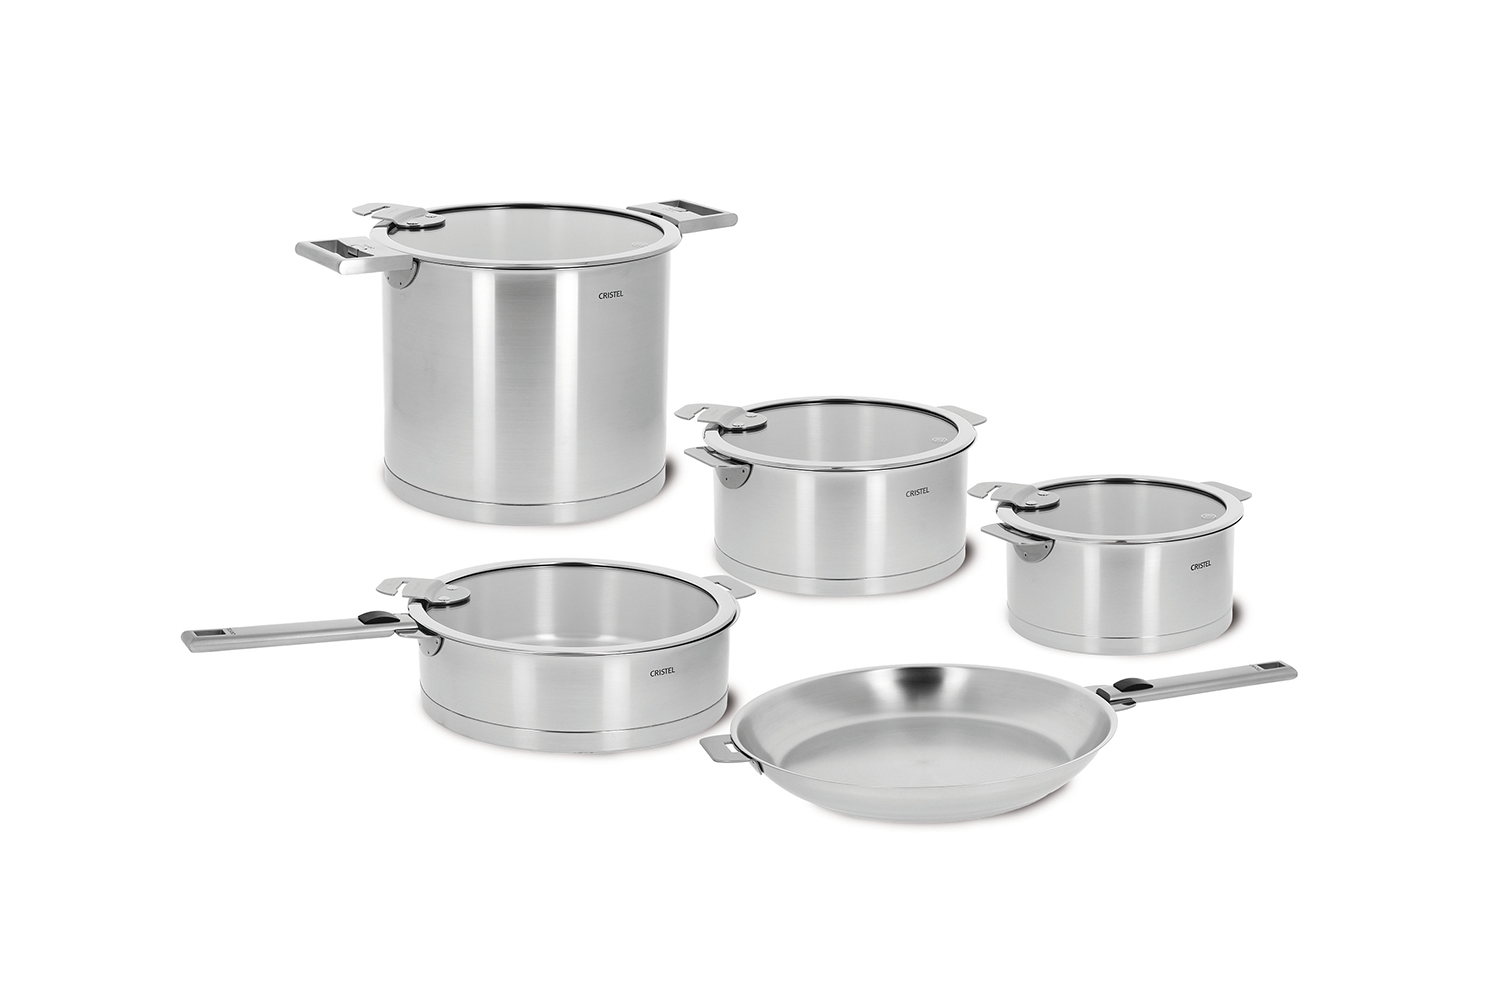 Cristel Strate Brushed Stainless 13 Piece Cookware Set, Removable Handle